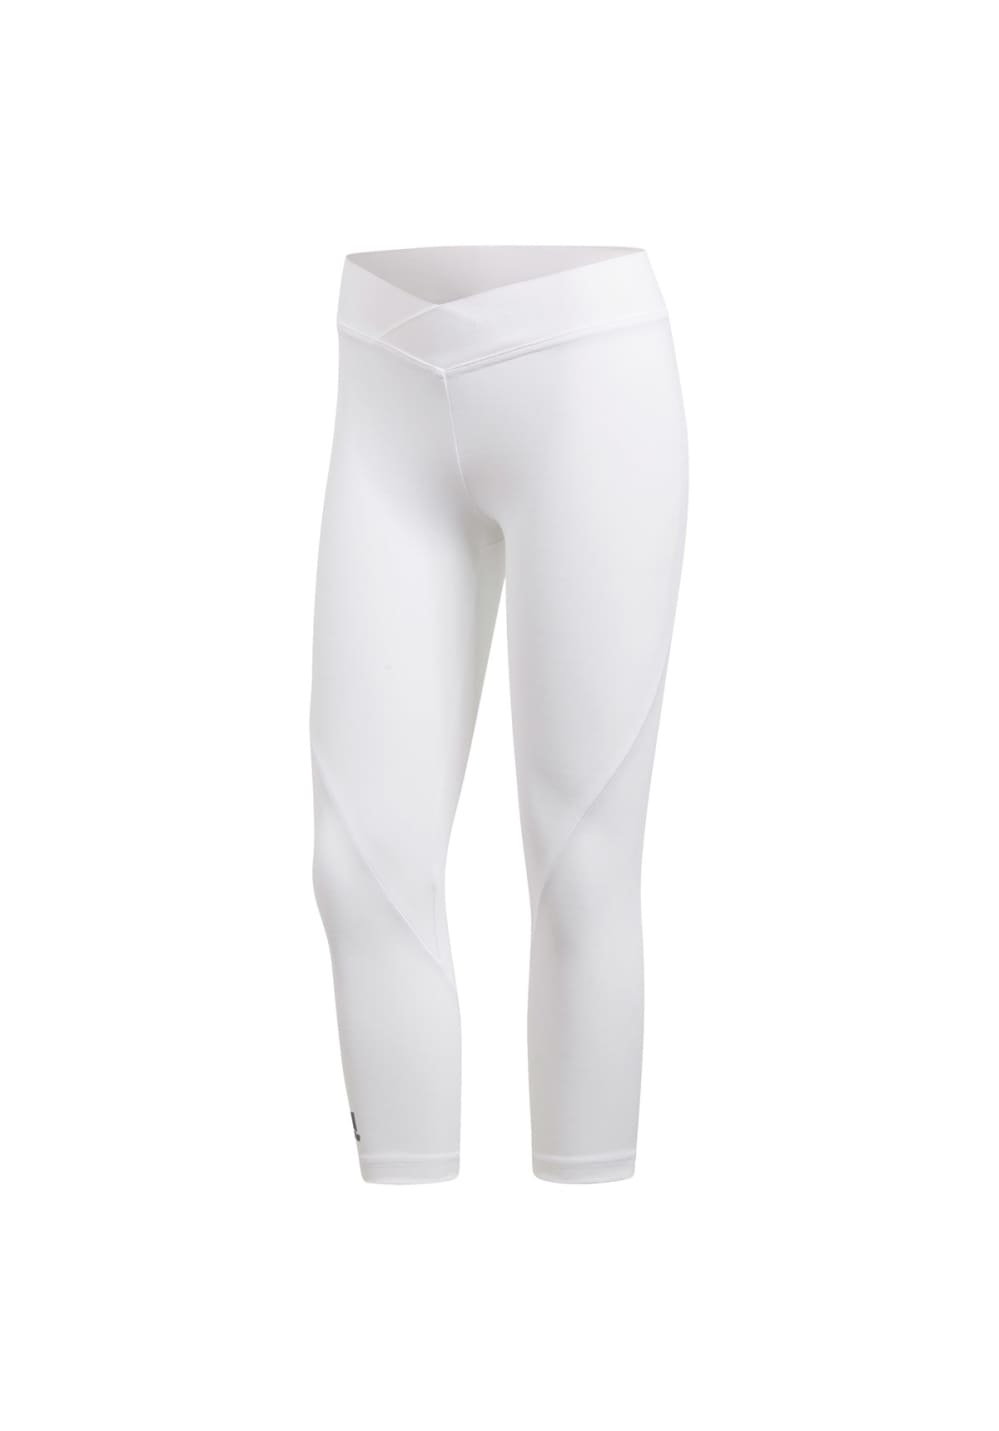 71a67c5fc7051 adidas Alphaskin Tech 3/4-tight - Fitness trousers for Women - White ...